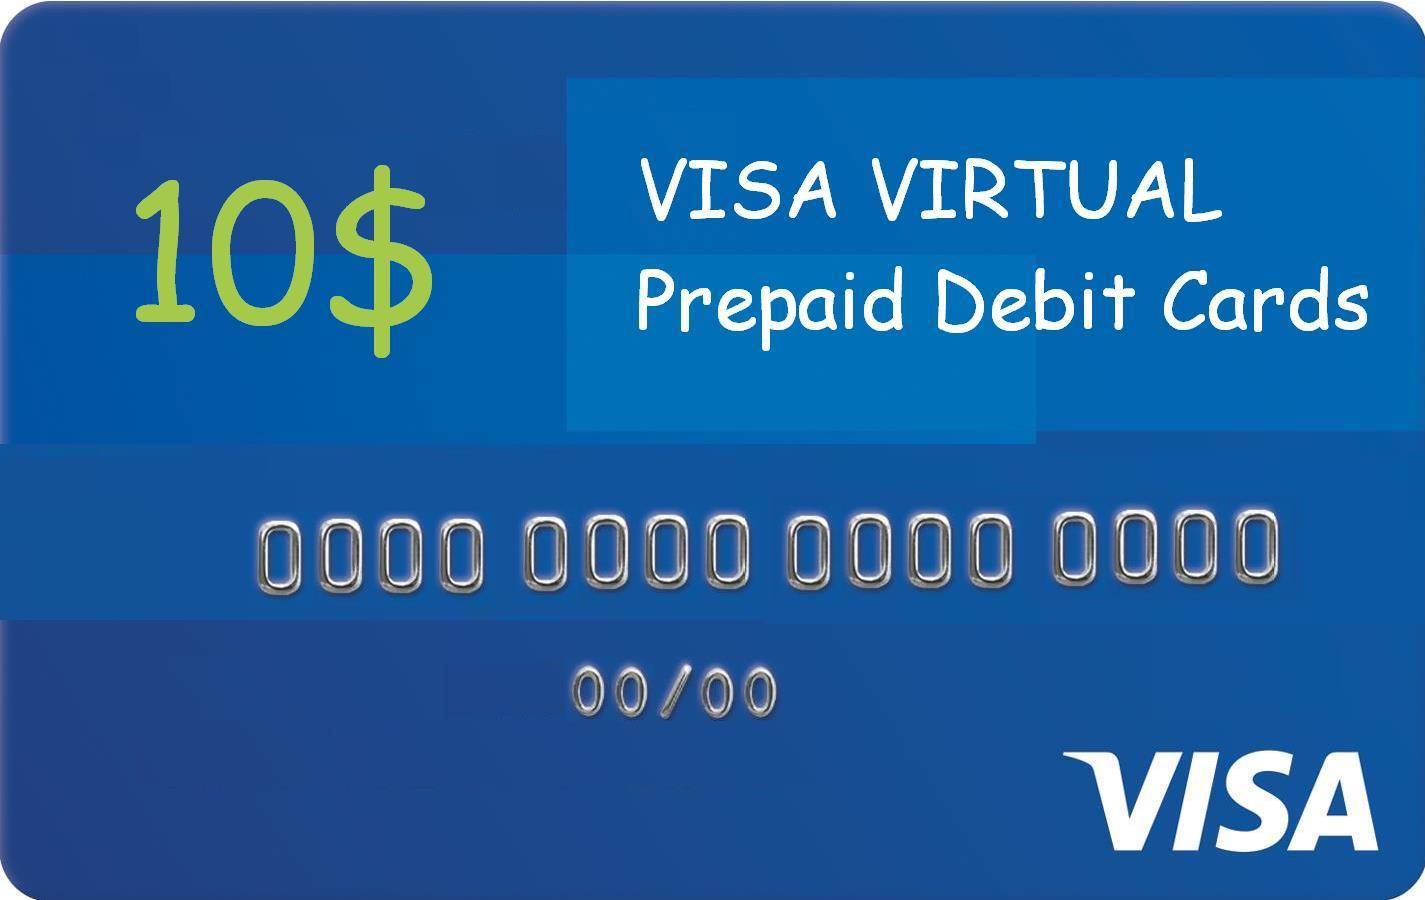 Visa Virtual Debit Card. From 10 to 100 USD.